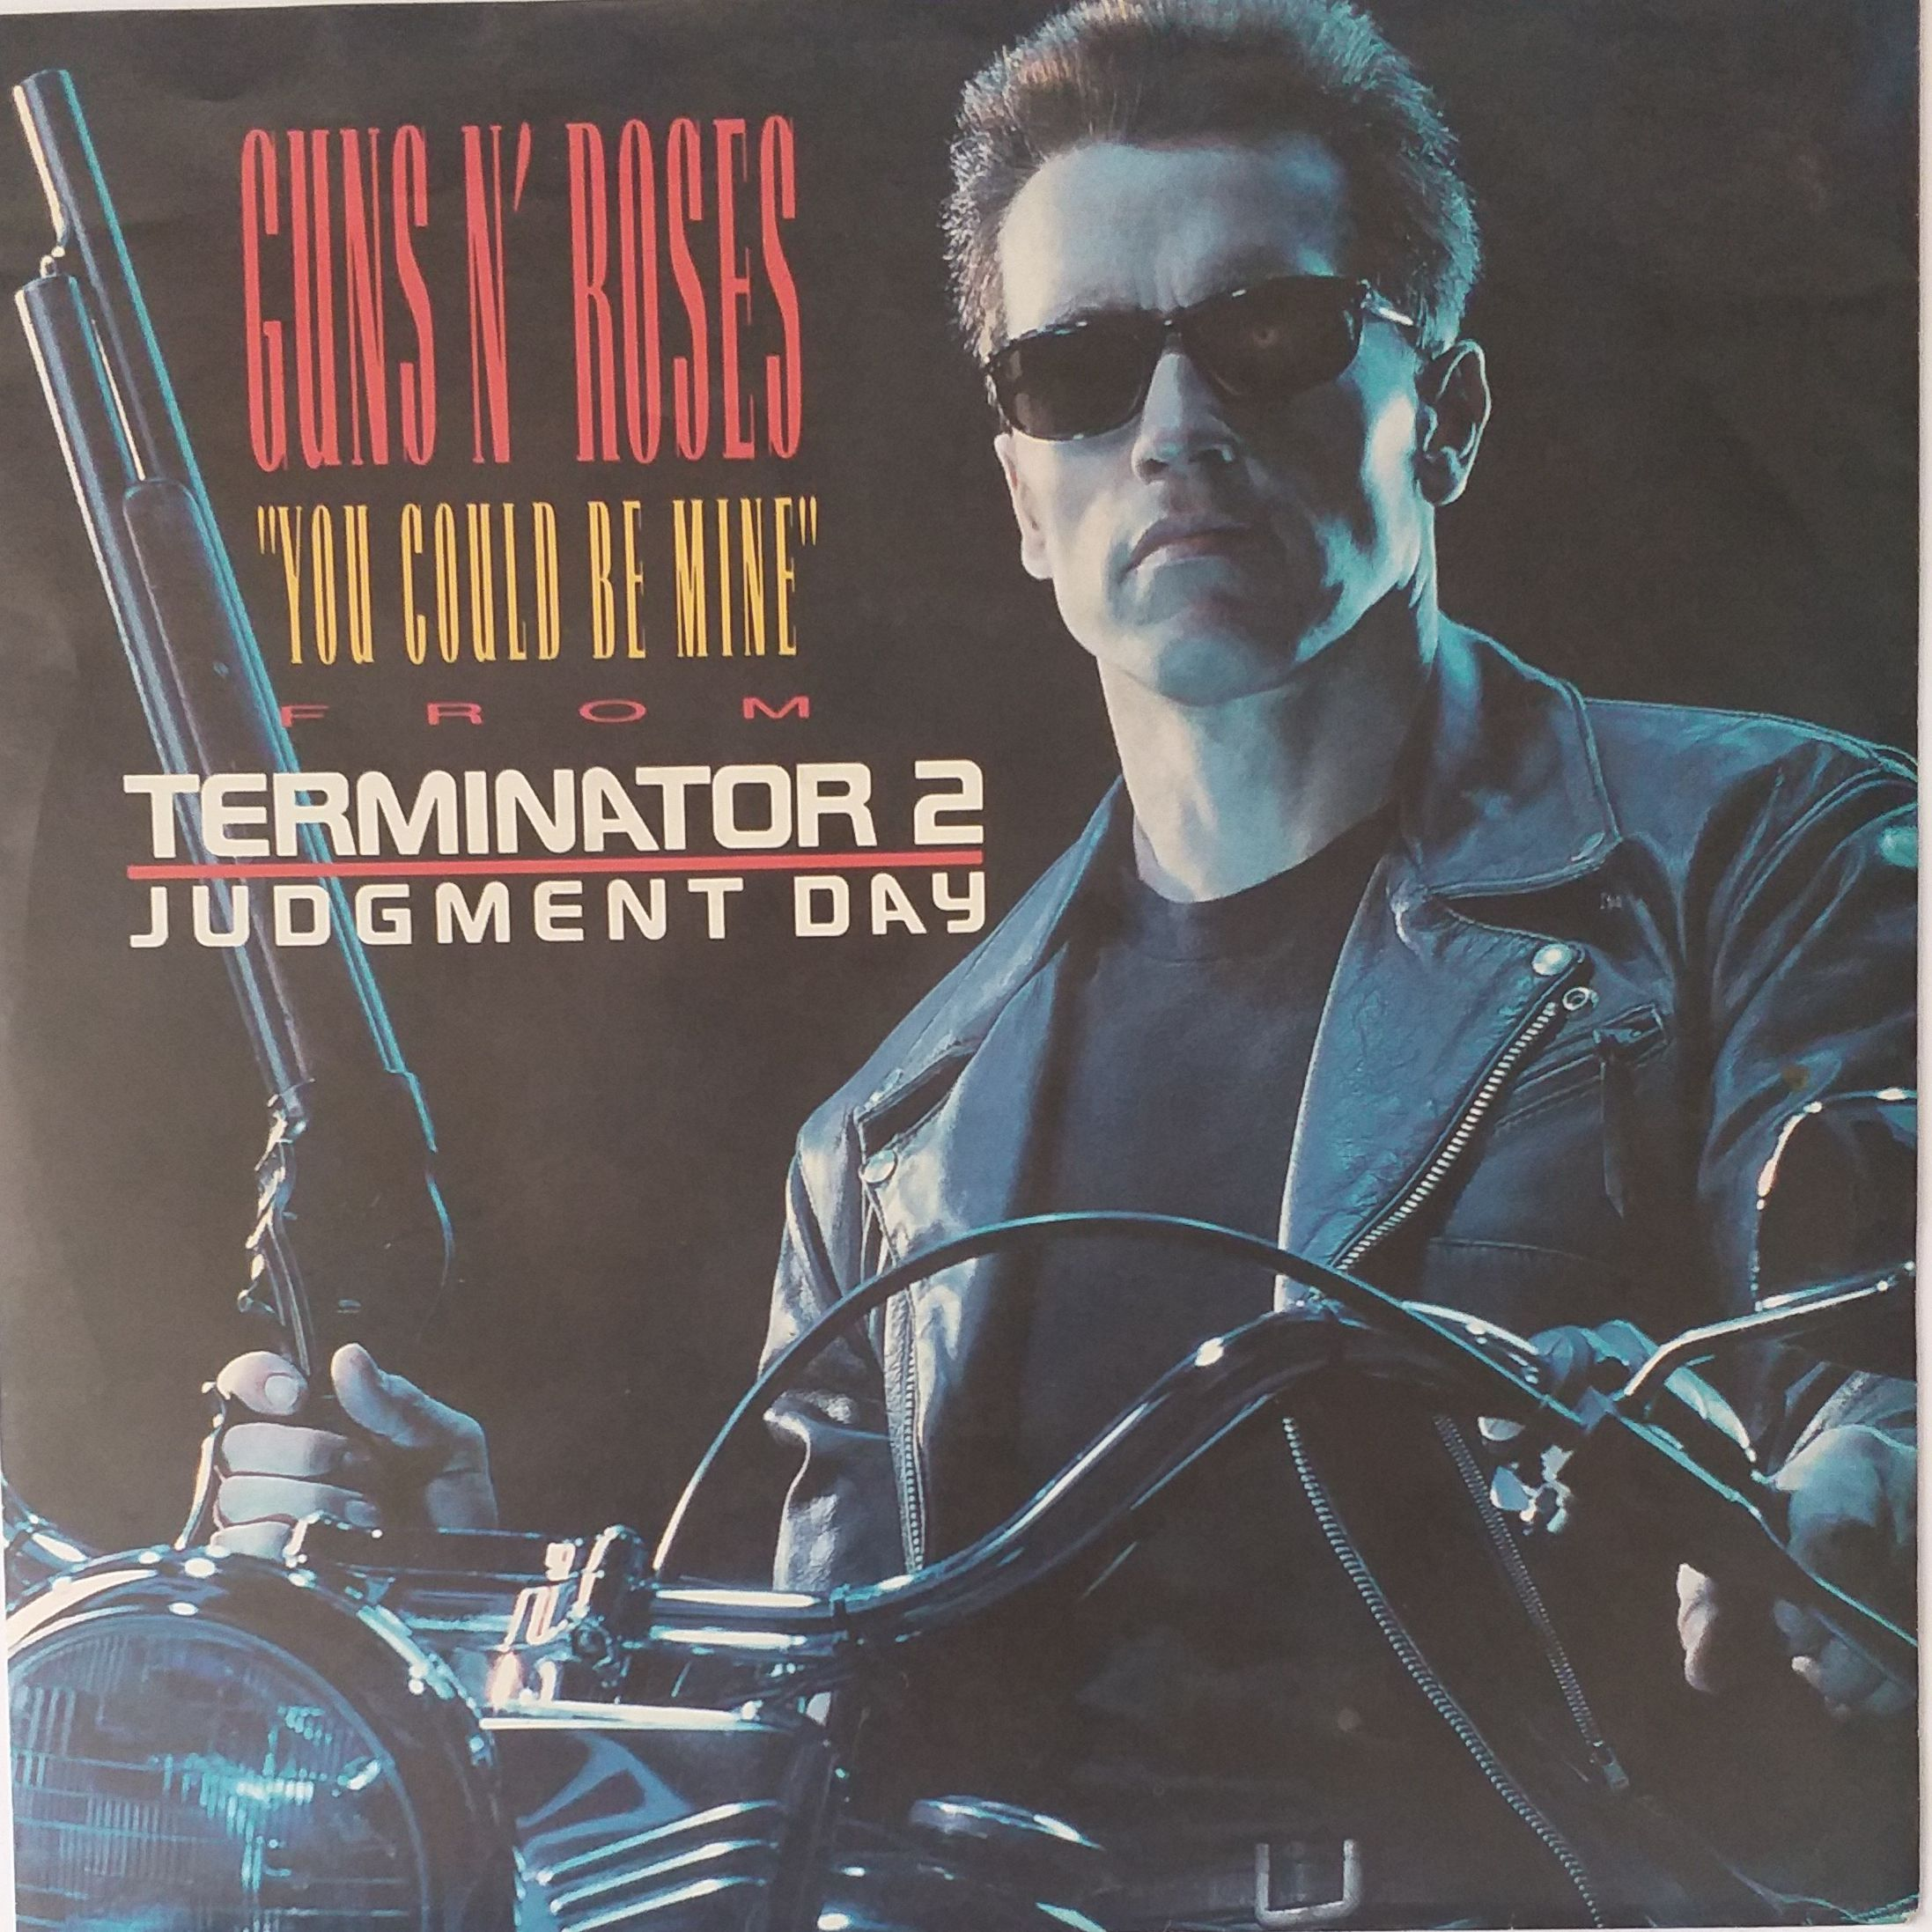 Guns'n roses You could be mine LP undefined